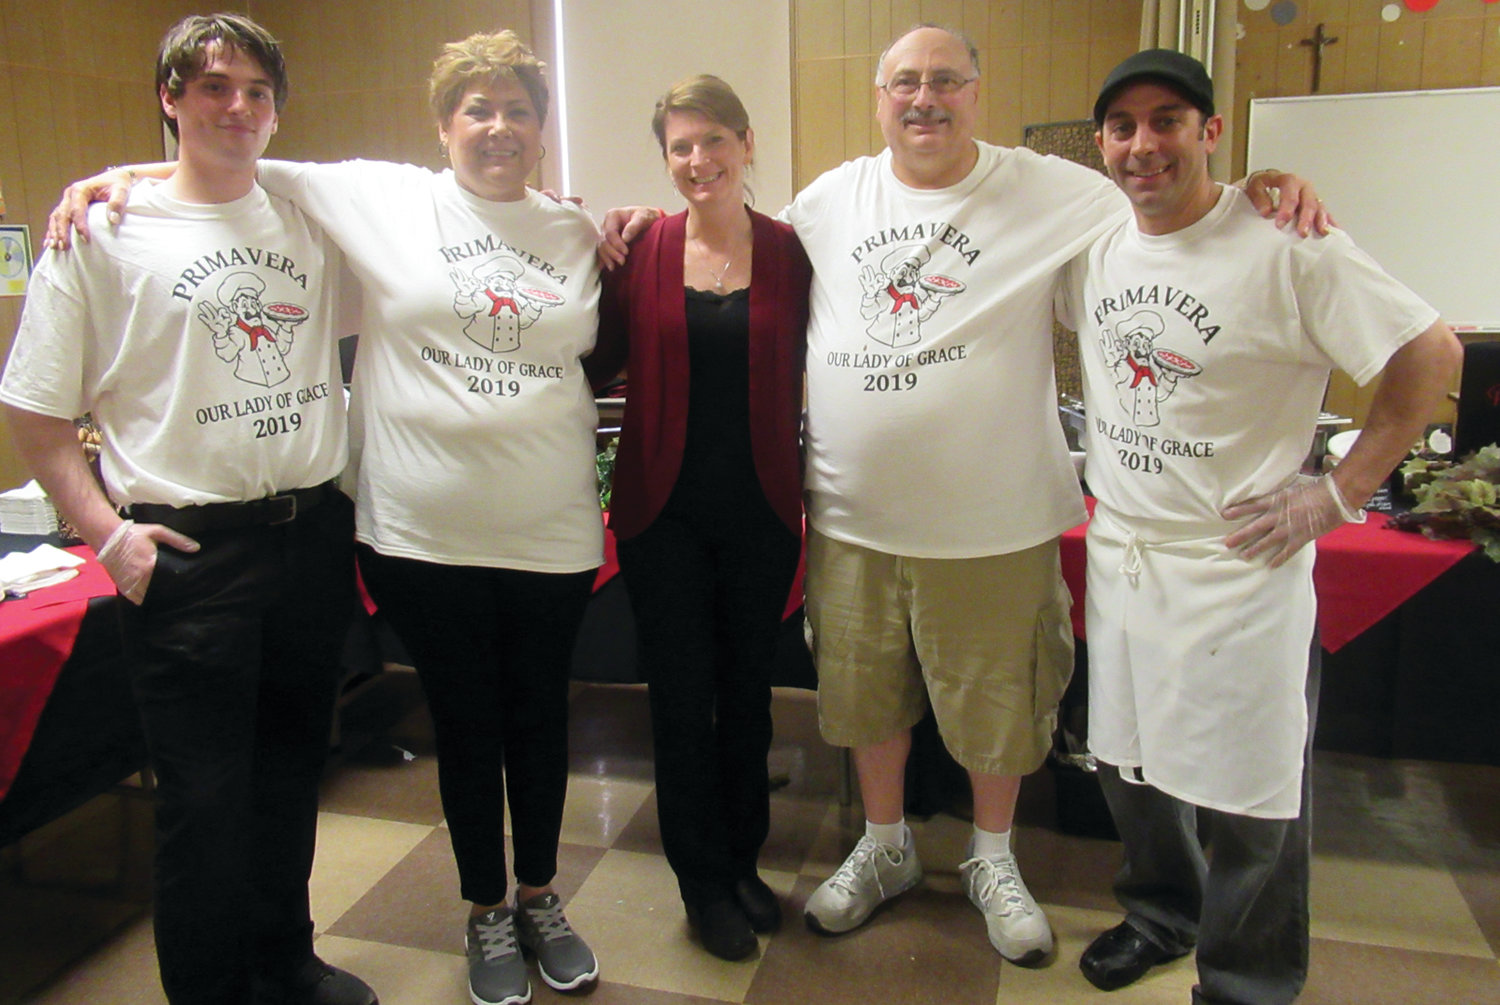 PARMA PALS: Hayden Beaulieu (left), Laura Ashworth (center) and David Ashworth (right) of Parma Restaurant enjoy a lighter moment with Joan Andreozzi and her husband Joe Andreozzi, who chaired what people called the best Primavera ever at Our Lady of Grace Church.